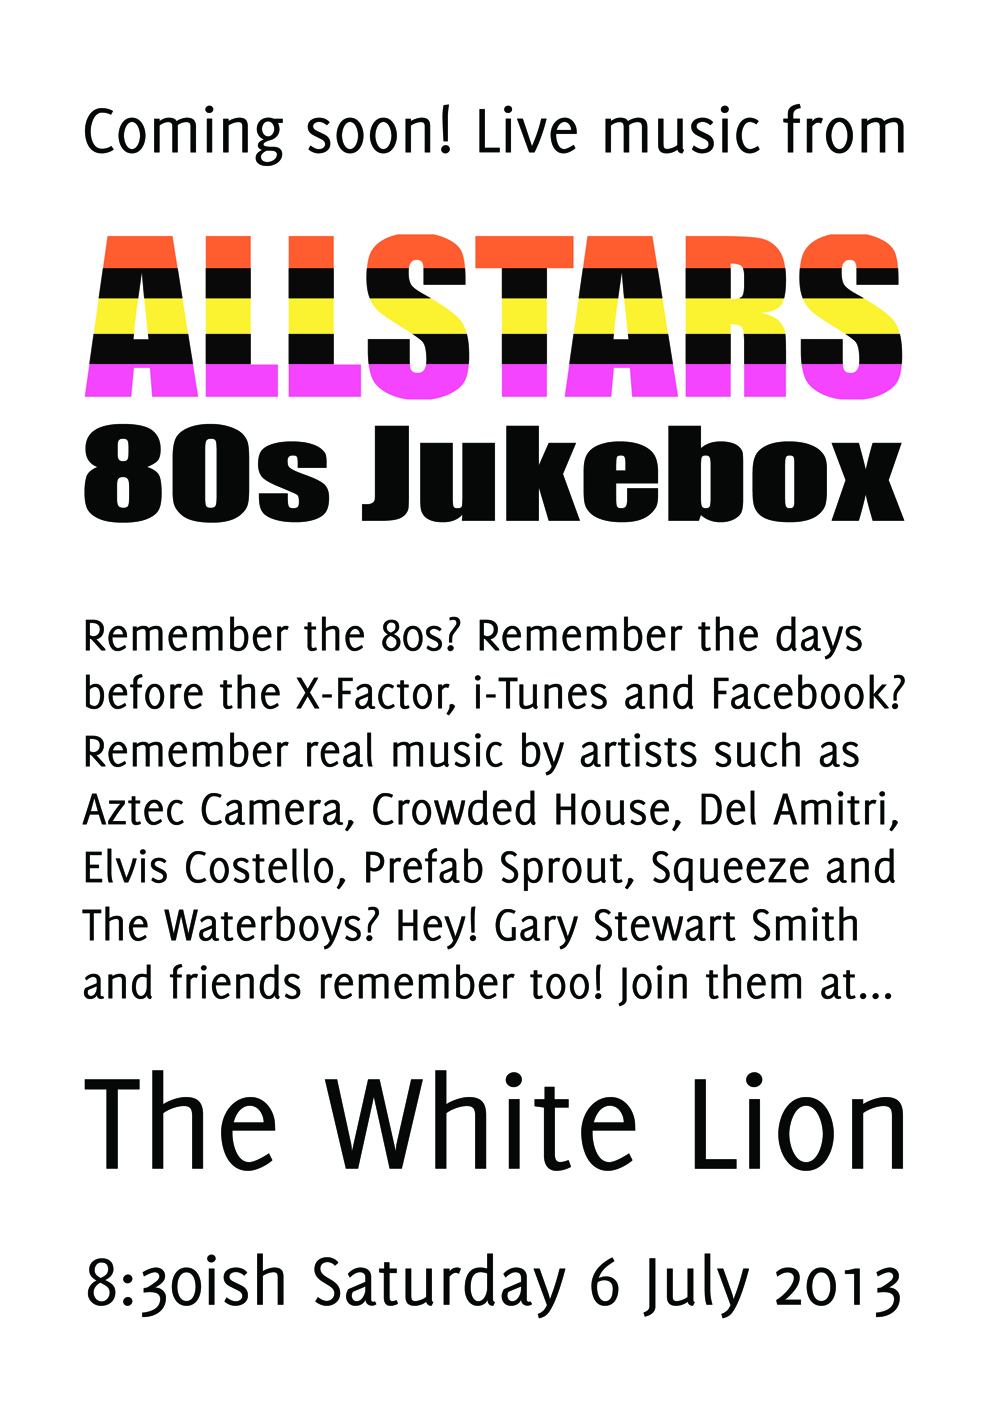 white lion 6 july 2013